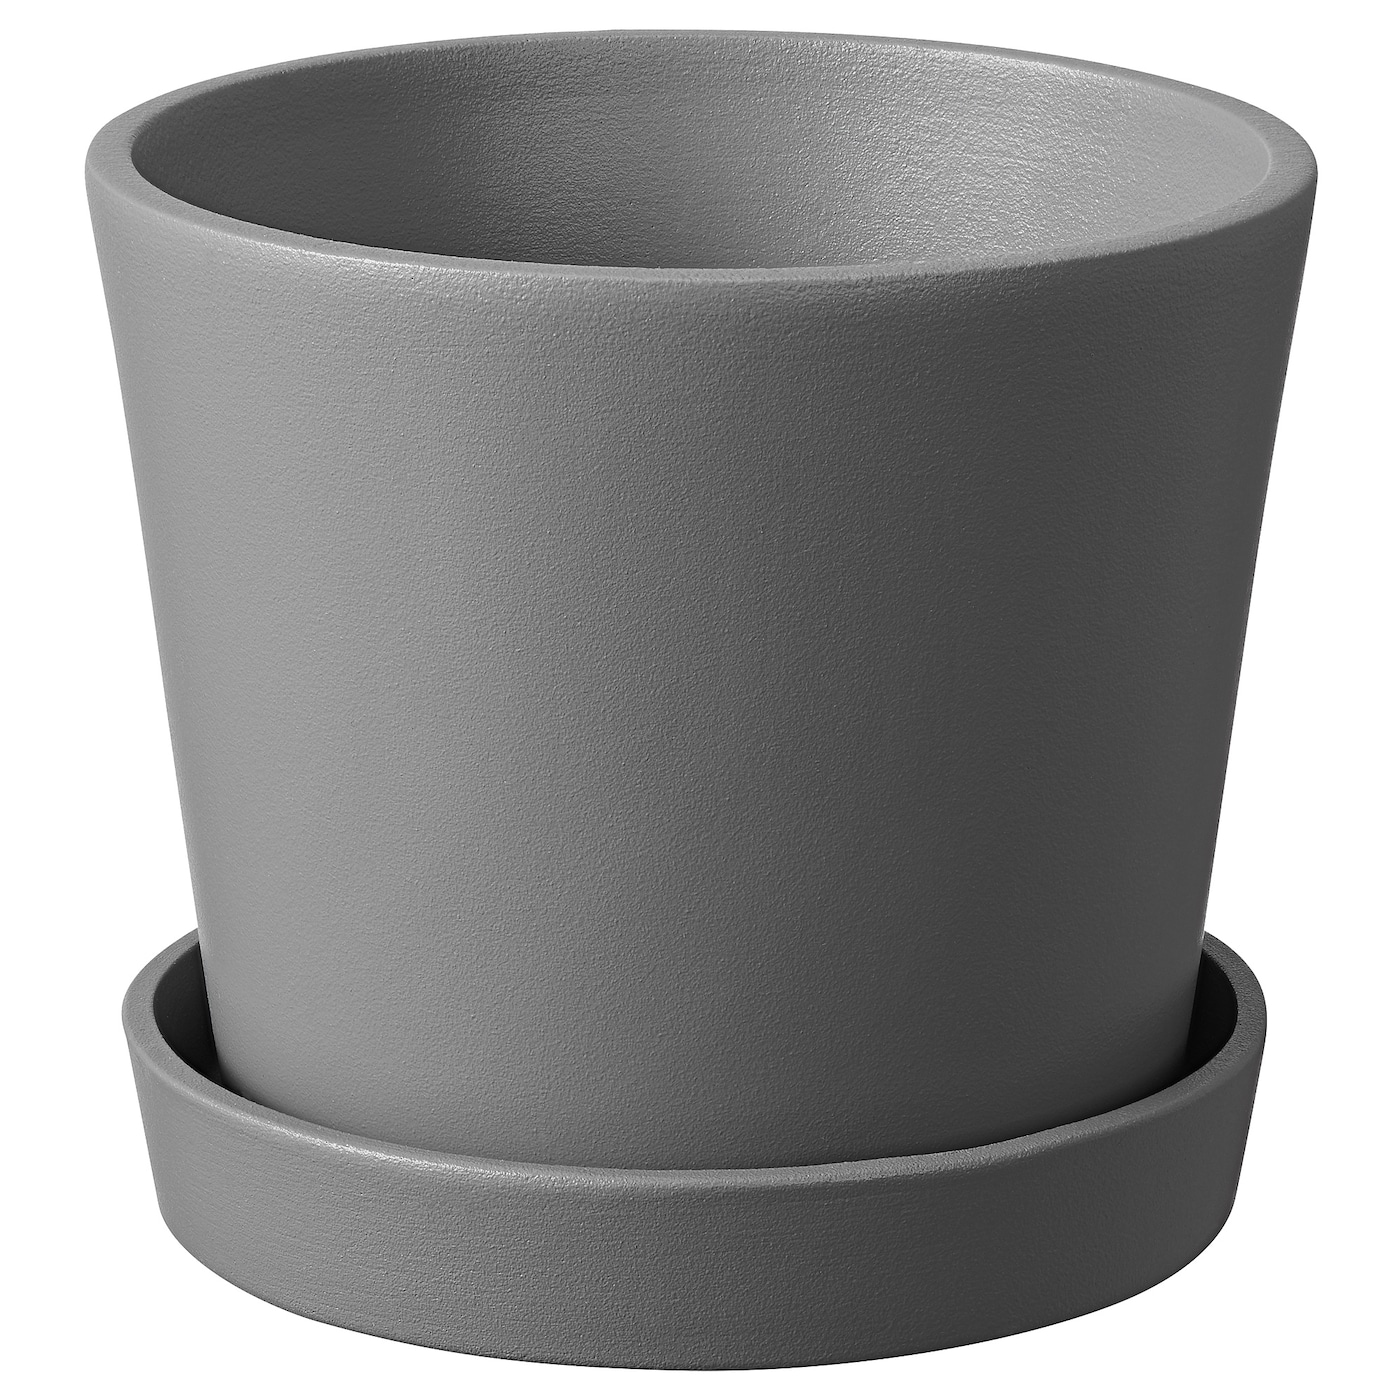 Ikea Smulgubbe Plant Pot And Saucer Lightweight Easy To Lift Move